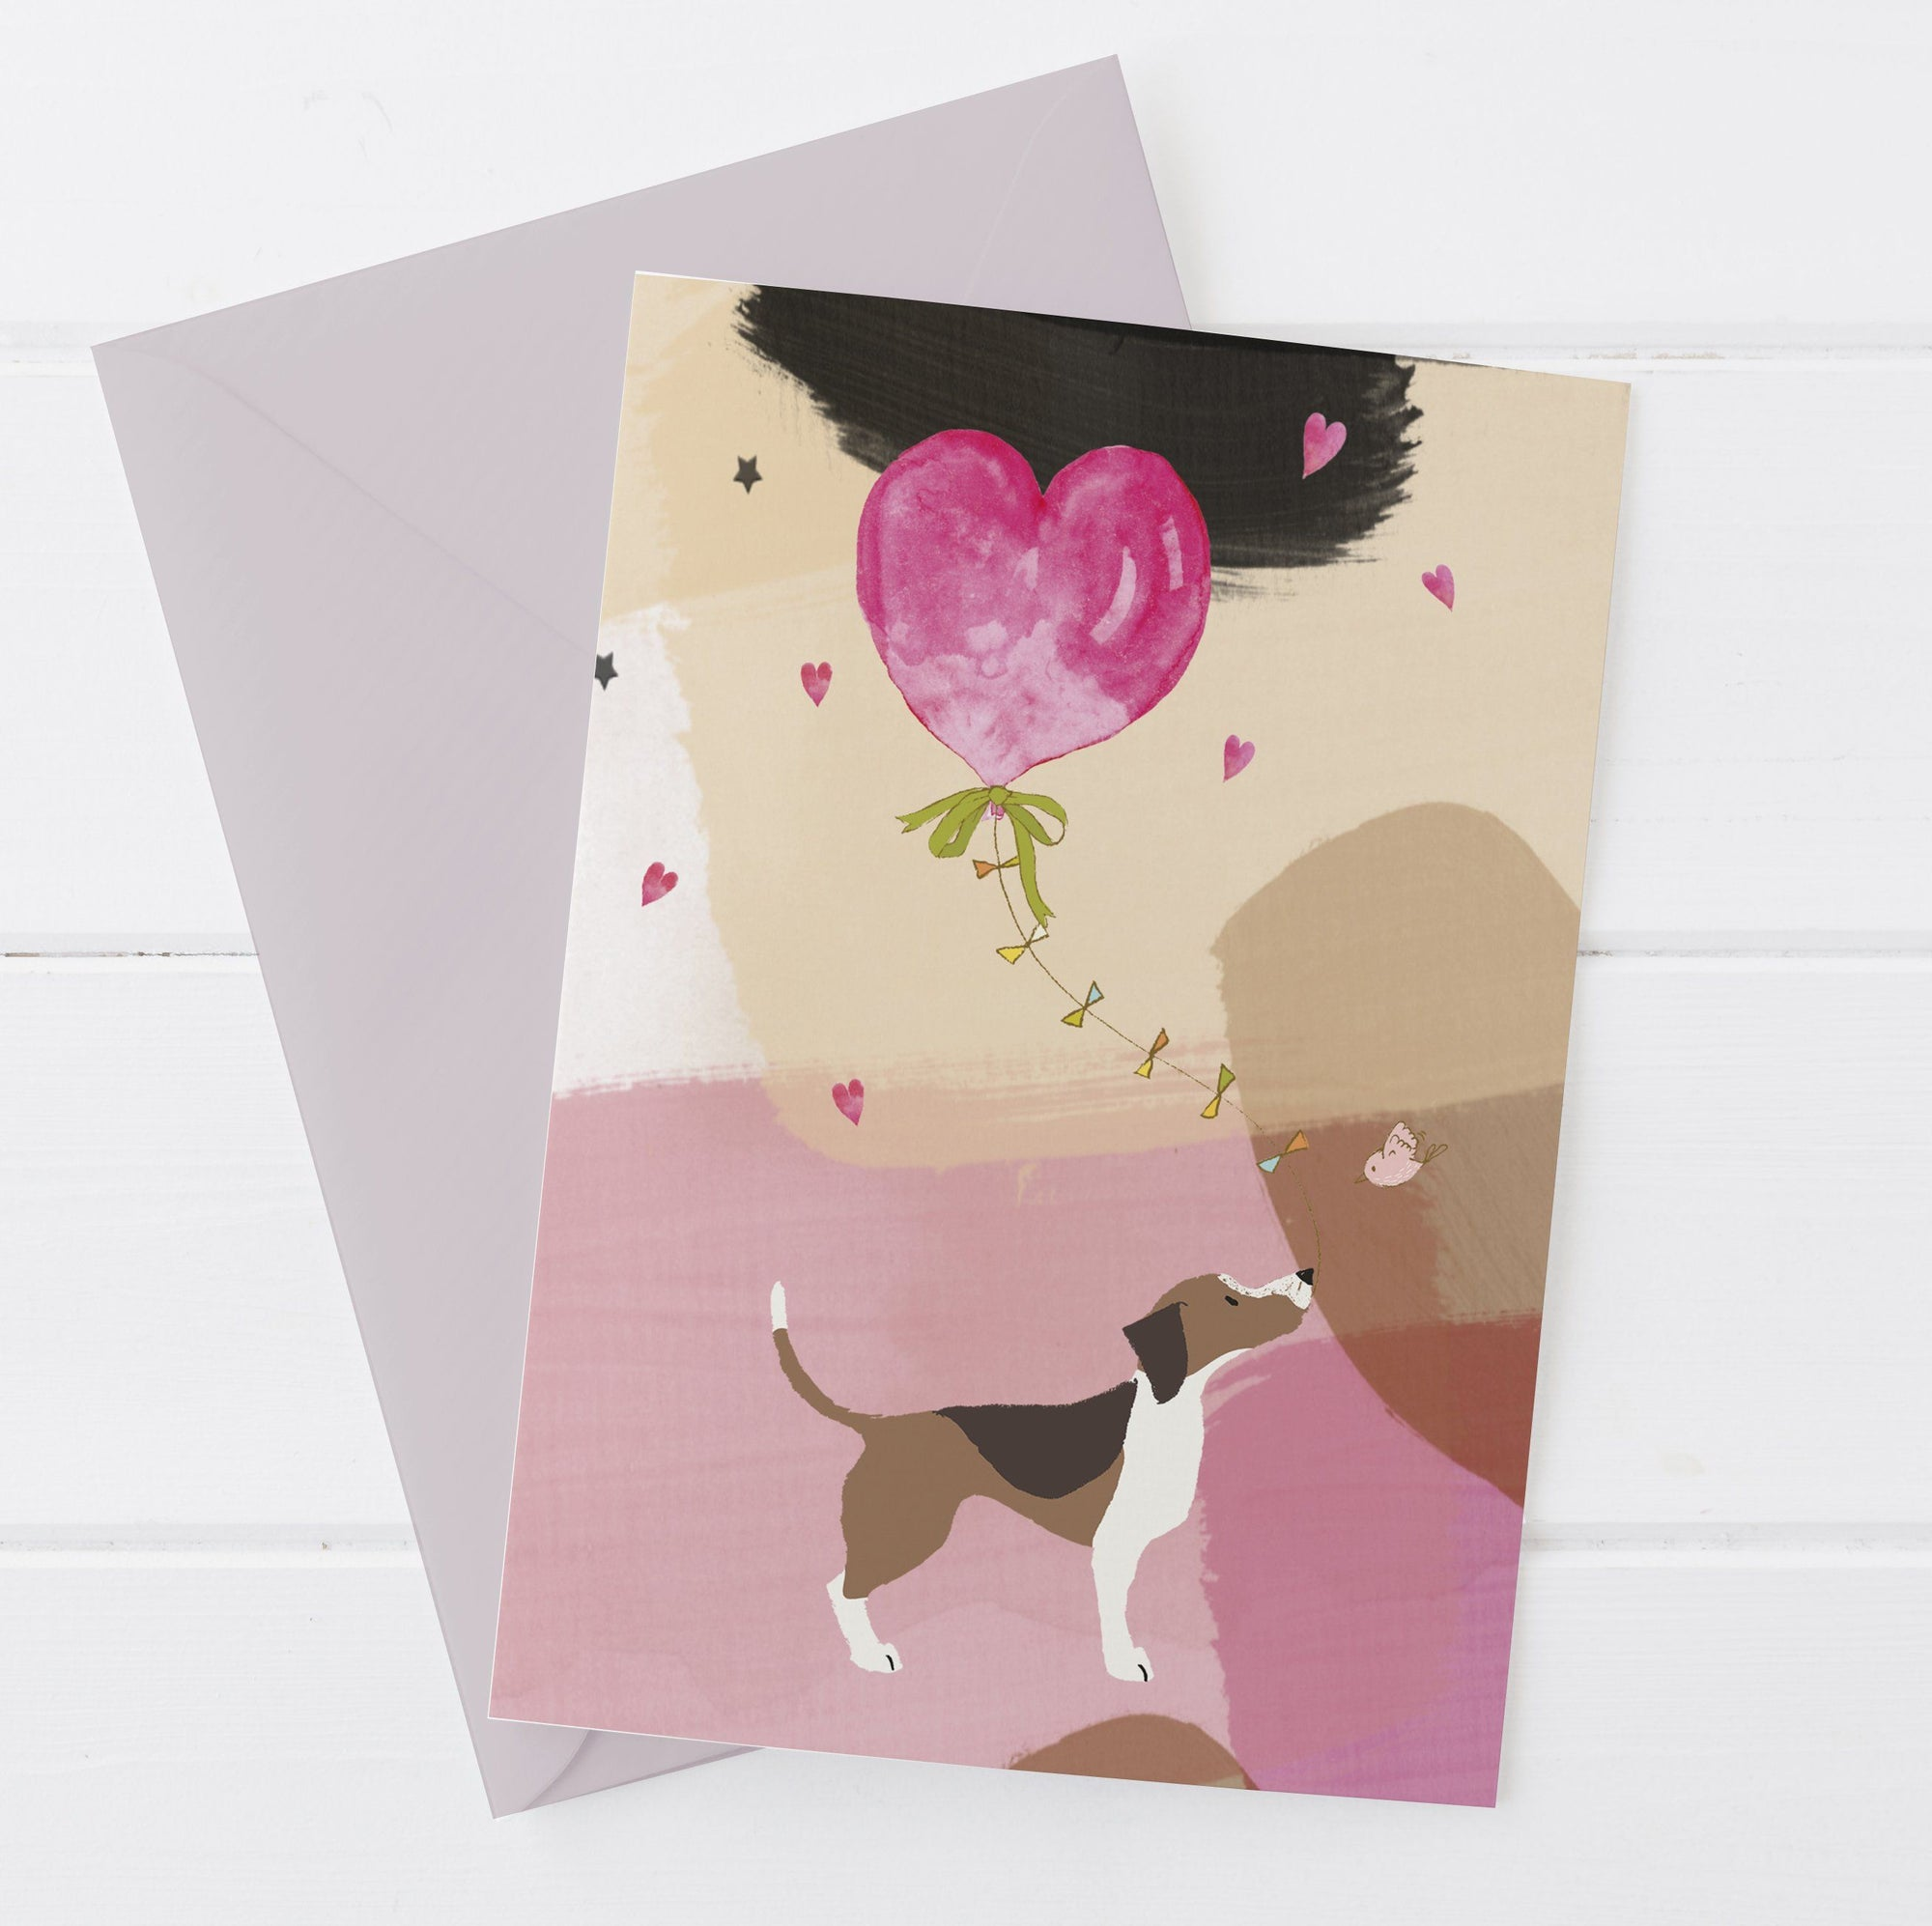 Dog Holding A Heart Greetings Card